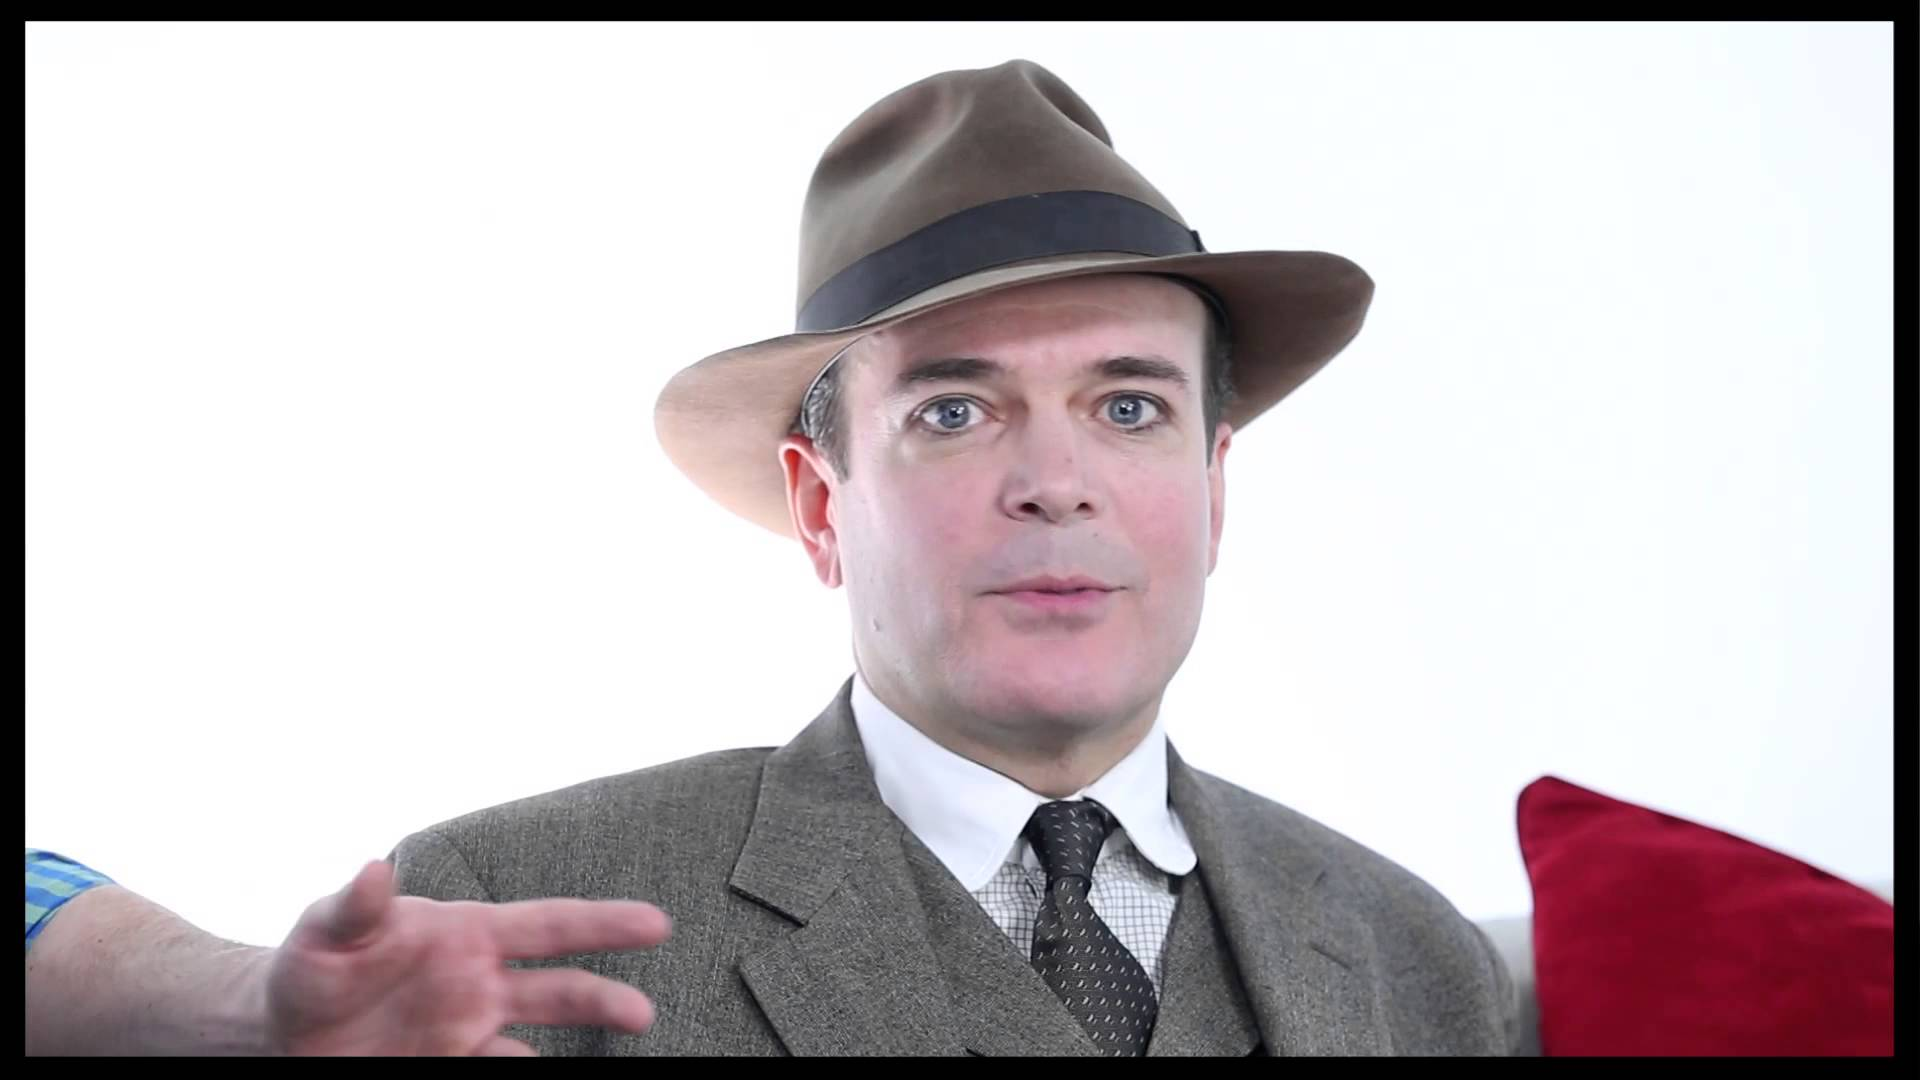 Original Broadway cast members Jefferson Mays and Bryce Pinkham answer your questions